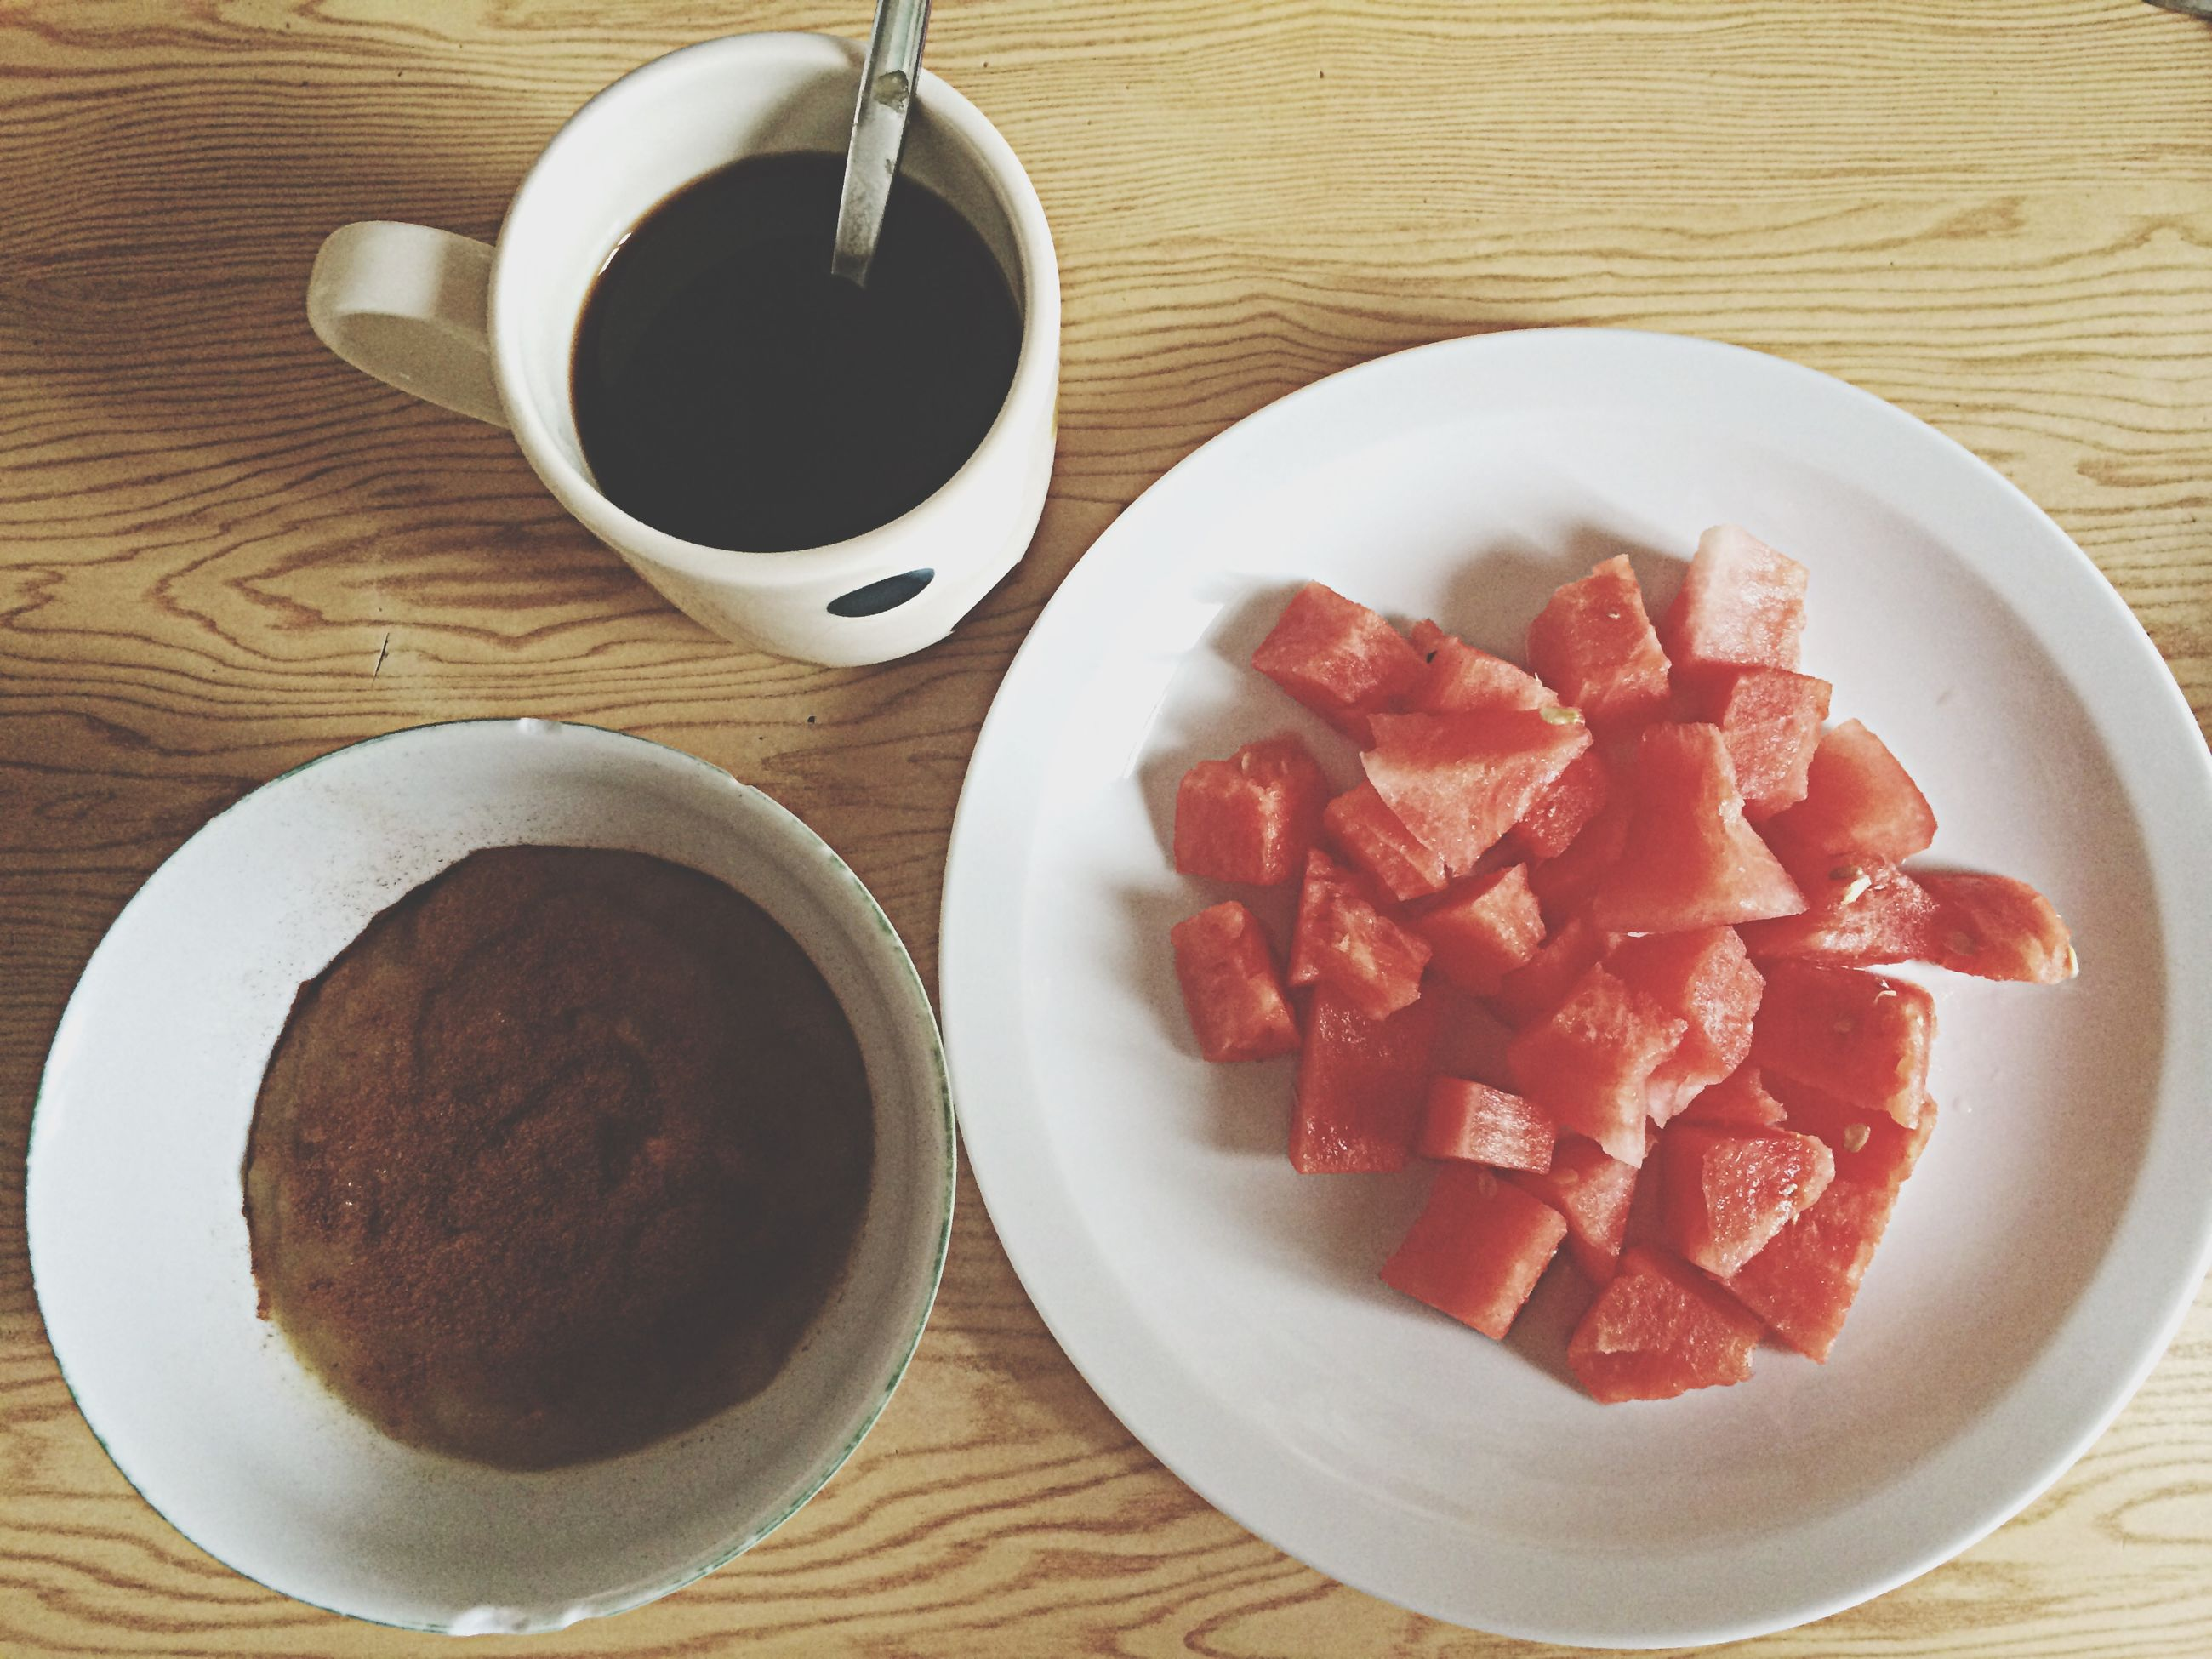 food and drink, indoors, freshness, table, food, healthy eating, still life, plate, high angle view, directly above, red, bowl, drink, ready-to-eat, refreshment, fruit, spoon, close-up, coffee cup, coffee - drink